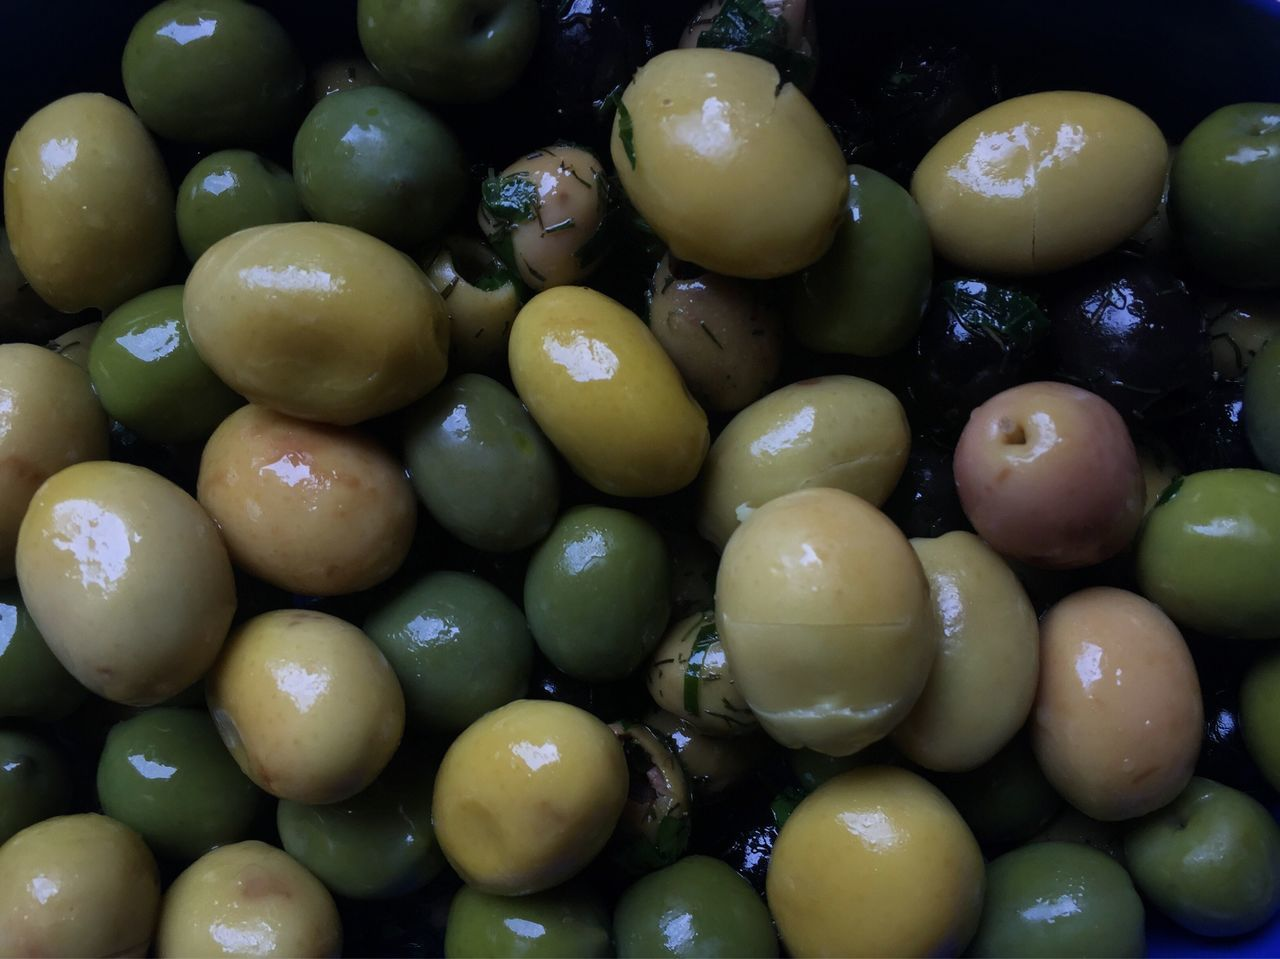 Green and black olives medley Food And Drink Food Healthy Eating Freshness No People Abundance Fruit Full Frame Vegetable Large Group Of Objects Backgrounds Indoors  Olive Close-up Day Olive Nutrition